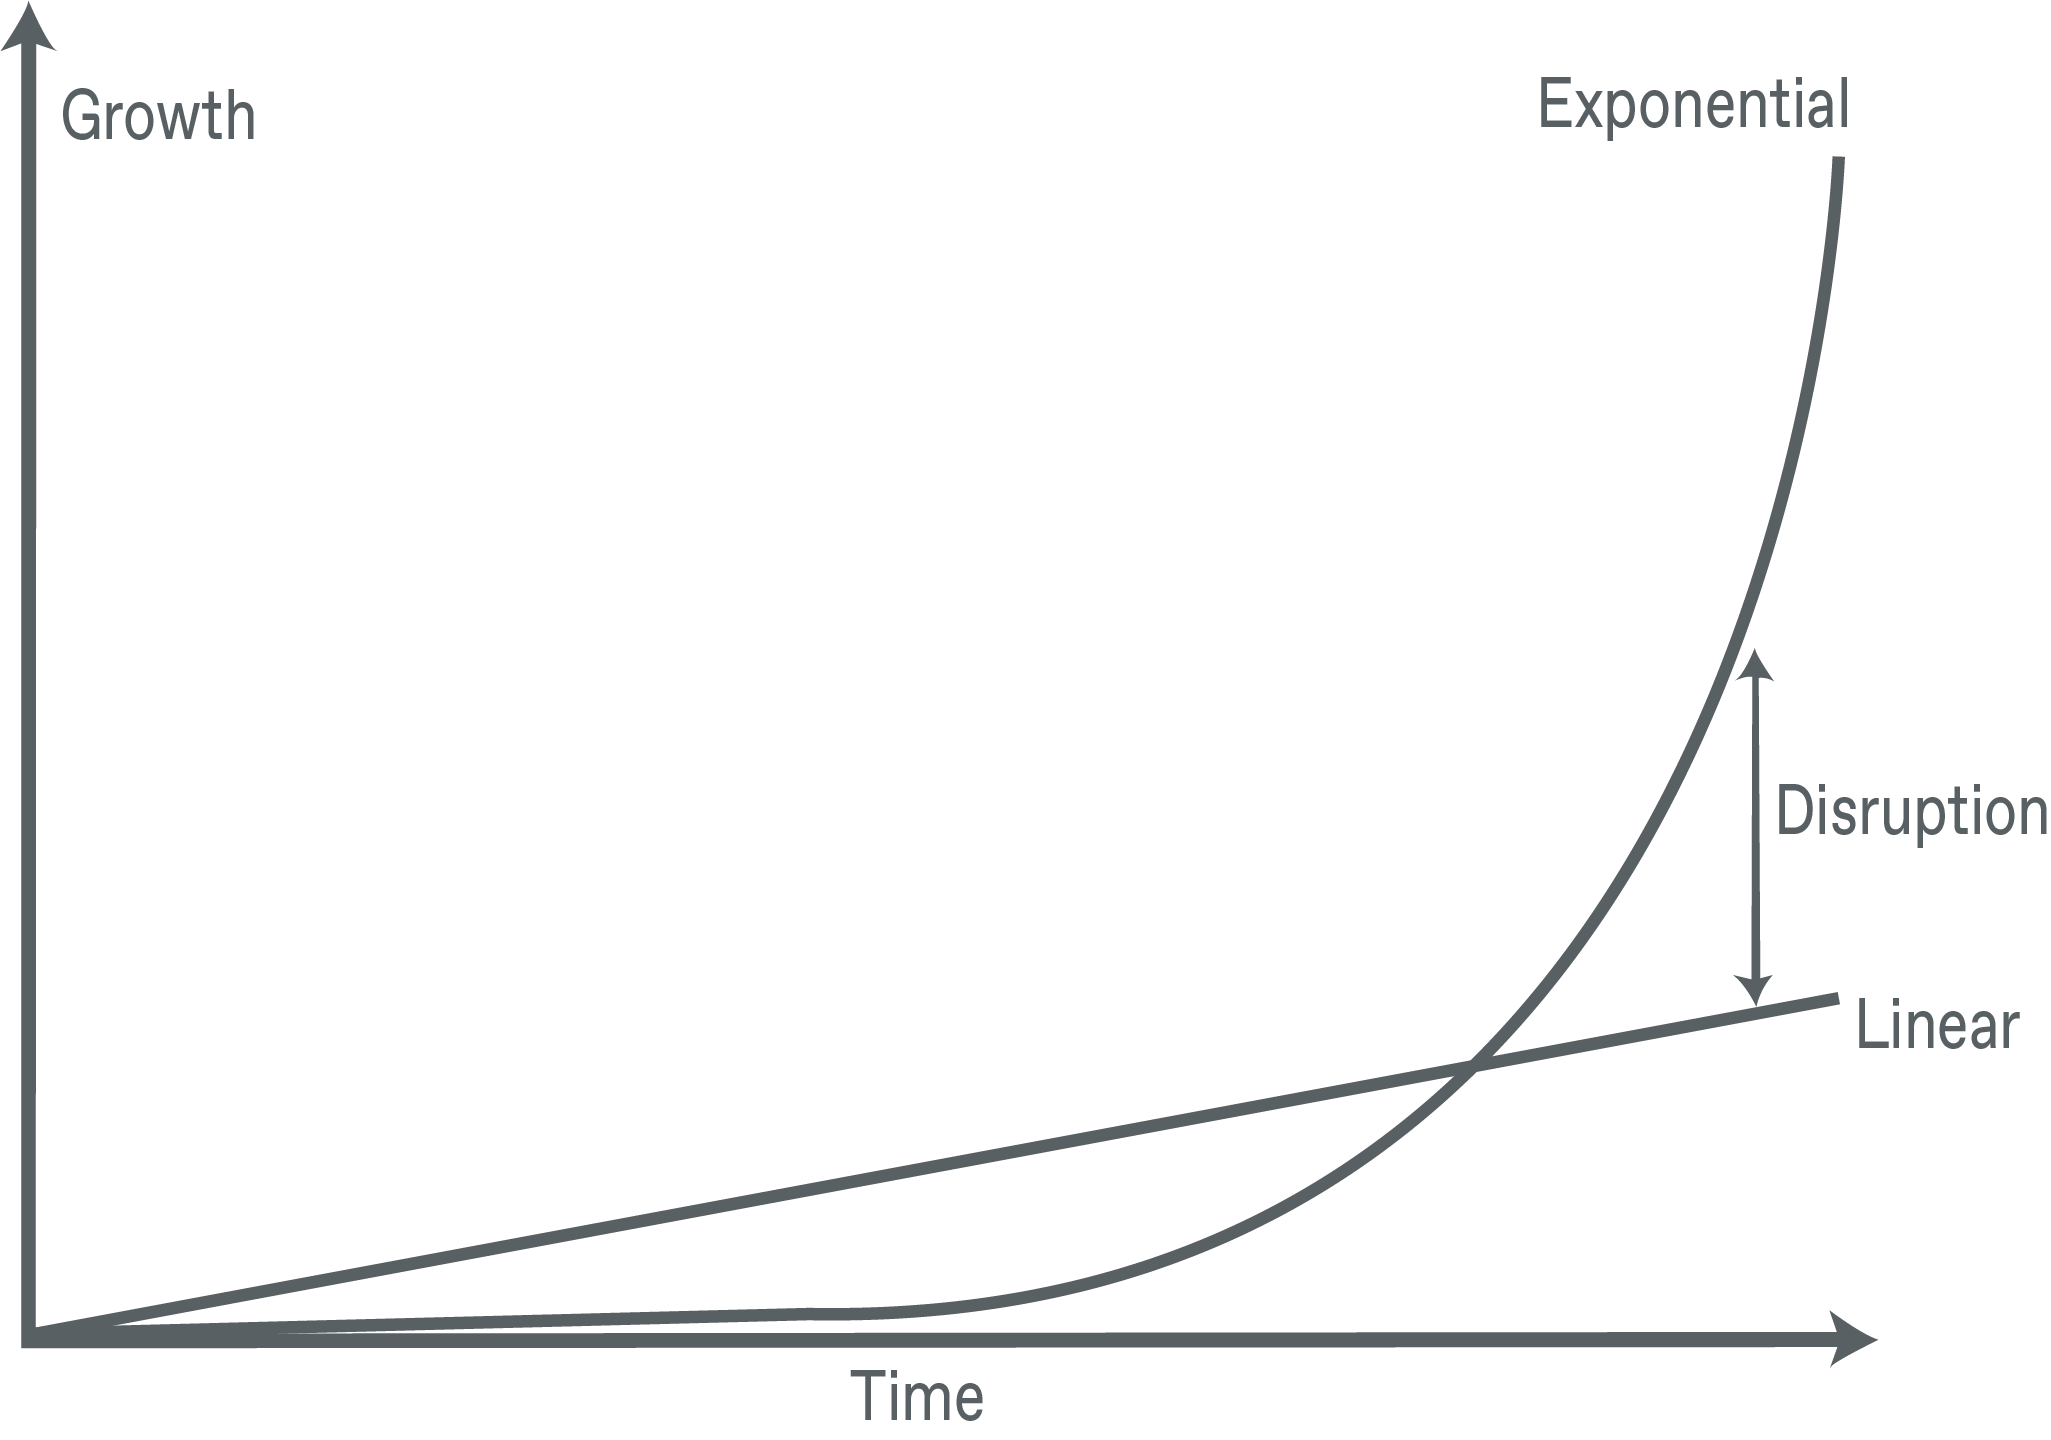 linear versus exponential growth chart